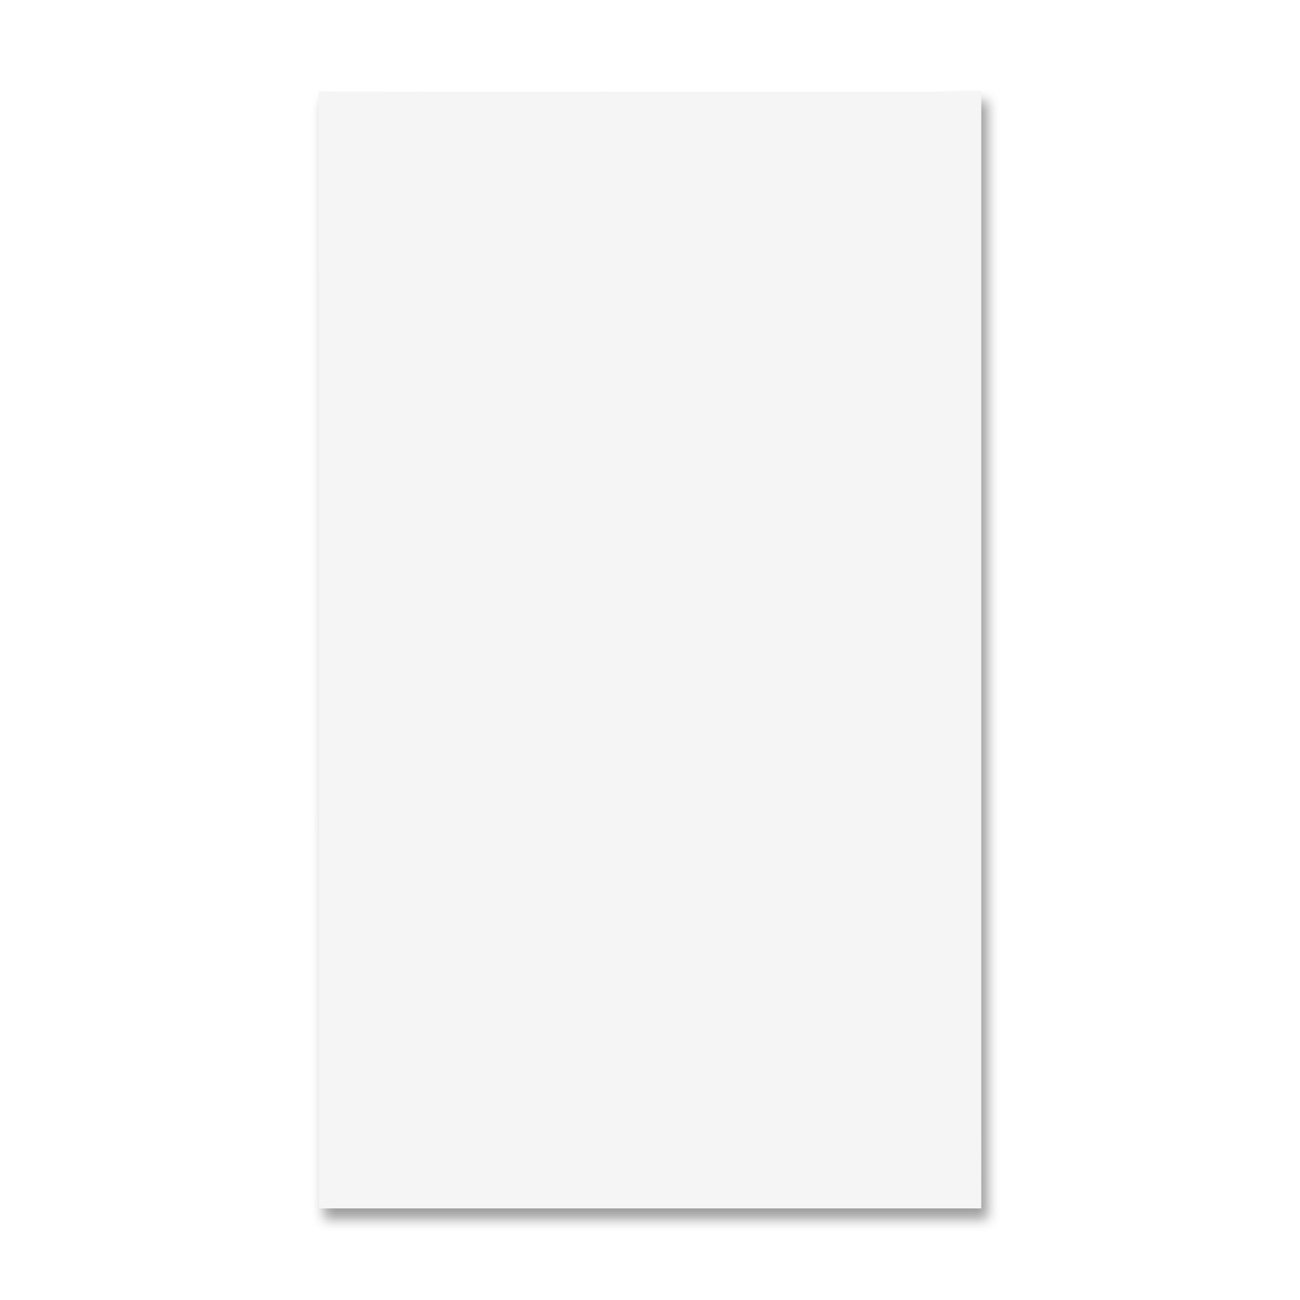 TOPS Memo Pads, 3'' x 5'', White Paper, 100 Sheets, 12 Pack (7820) by TOPS Business Forms, Inc.